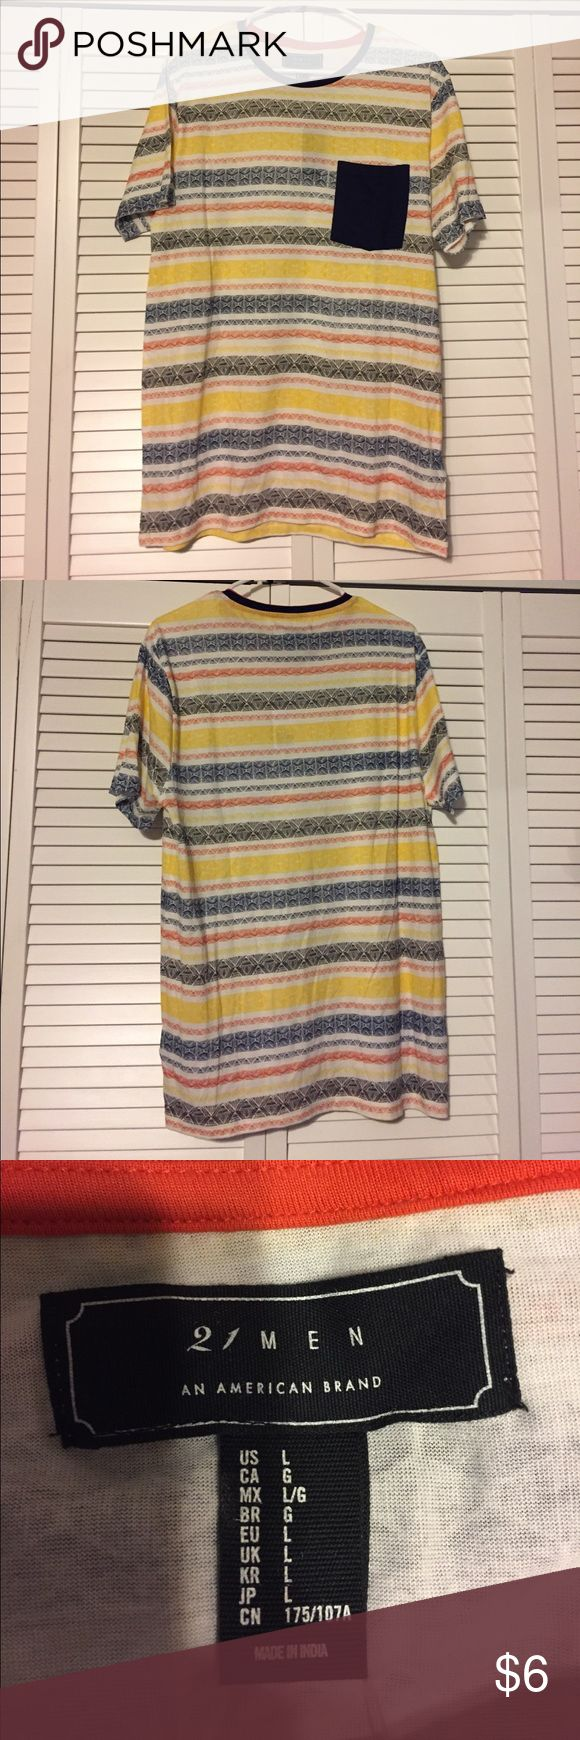 🆕21 MEN🆕NEW W TAGS KNIT PATTERN TOP Men's Large This Men's tshirt has never been worn and is new with tags. Has blue, yellow, orange and yellow pattern throughout with navy blue breast pocket. All questions welcomed! 21men Shirts Tees - Short Sleeve